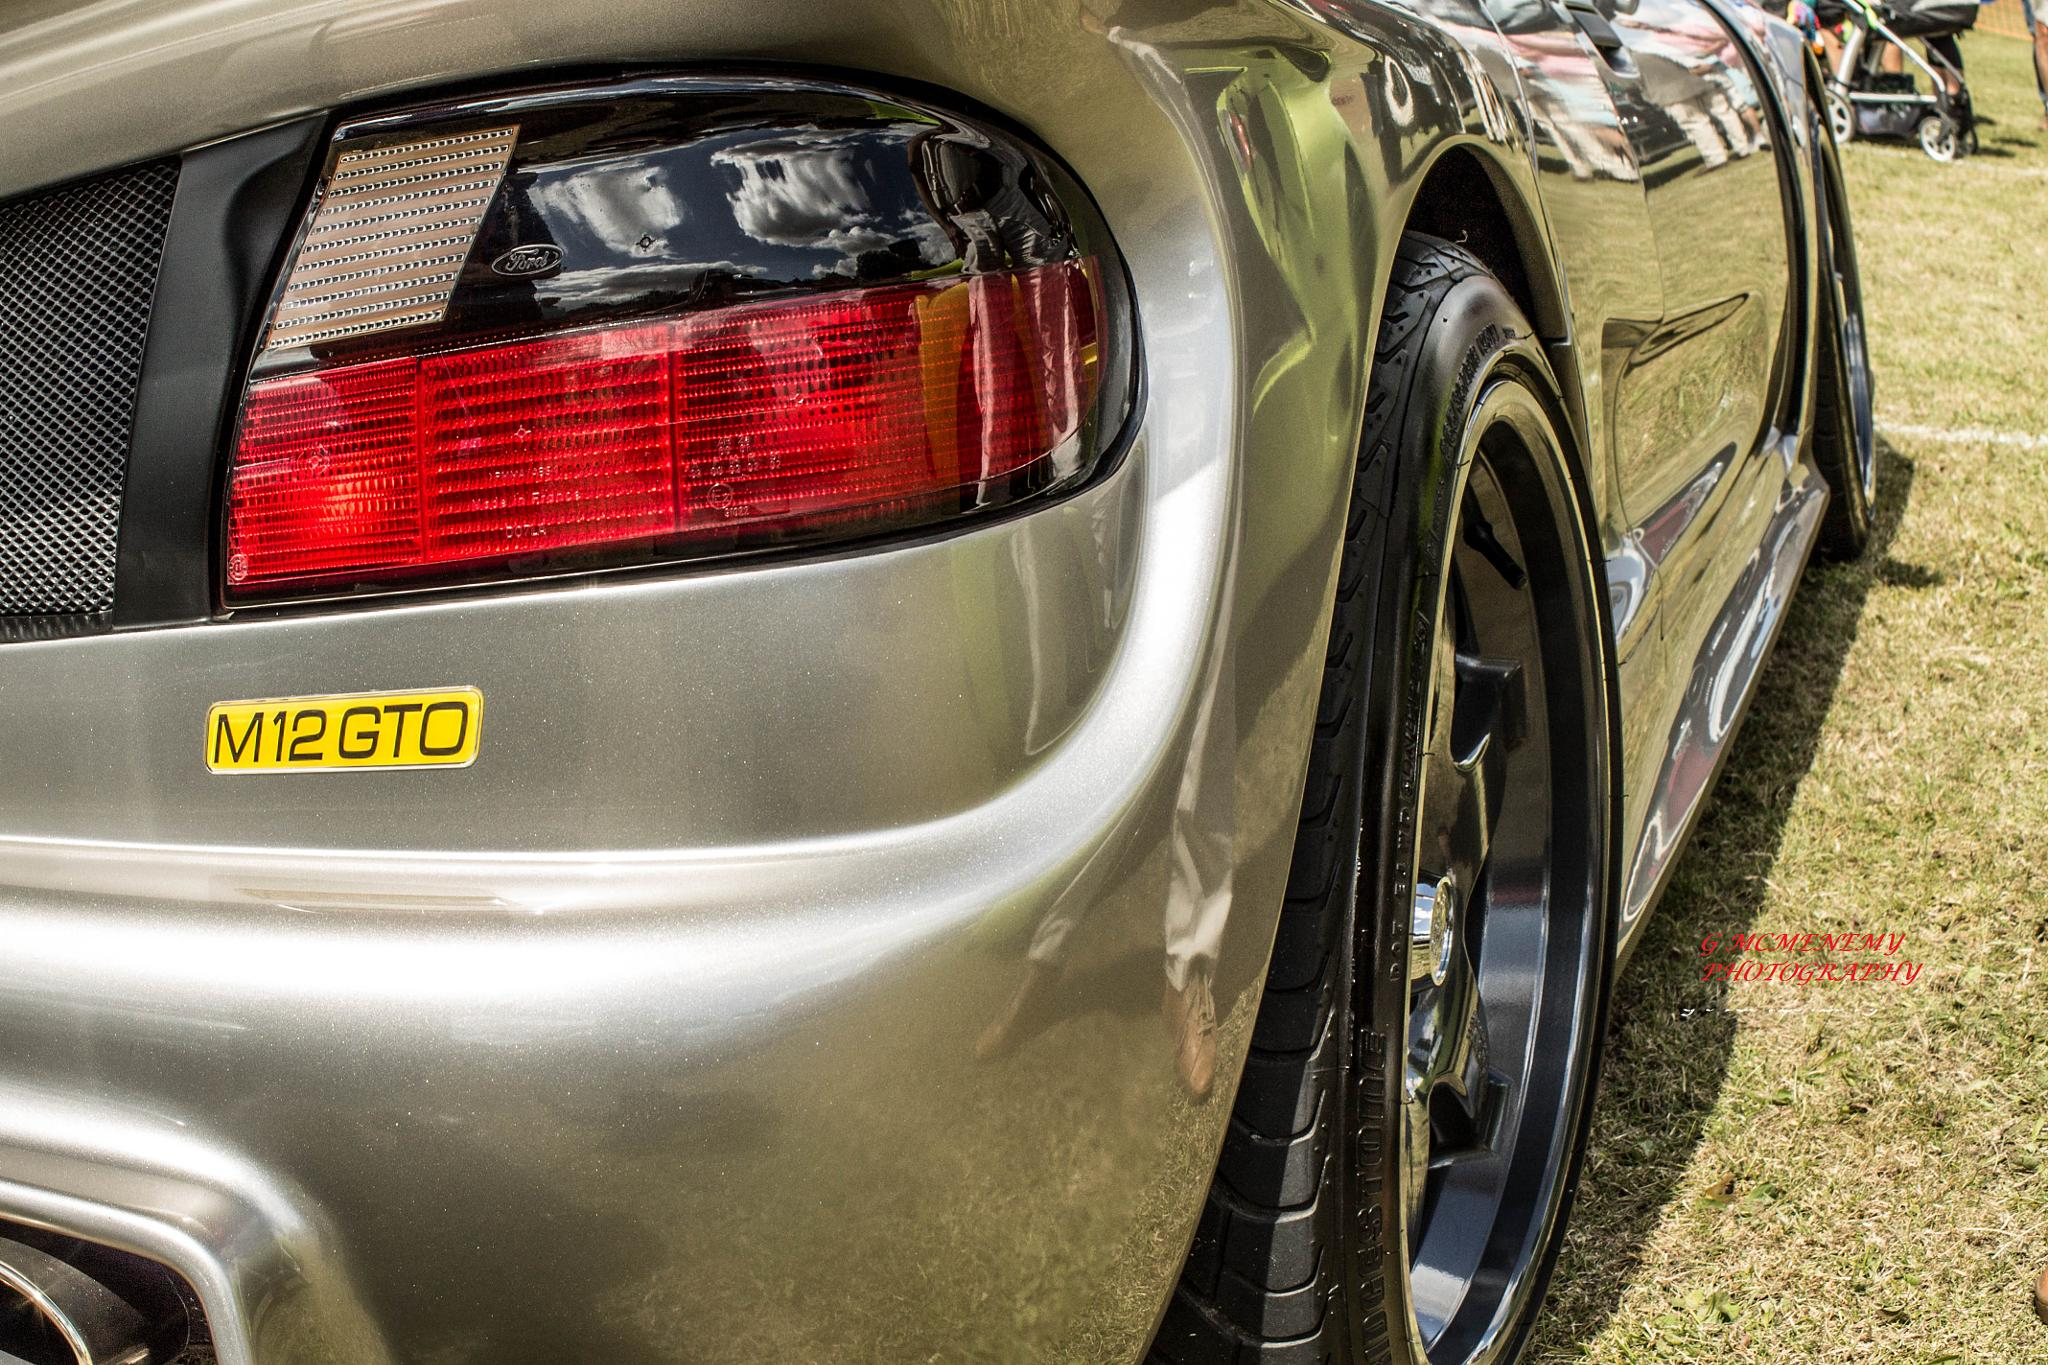 Noble m12 GTO by george.mcmenemy.7